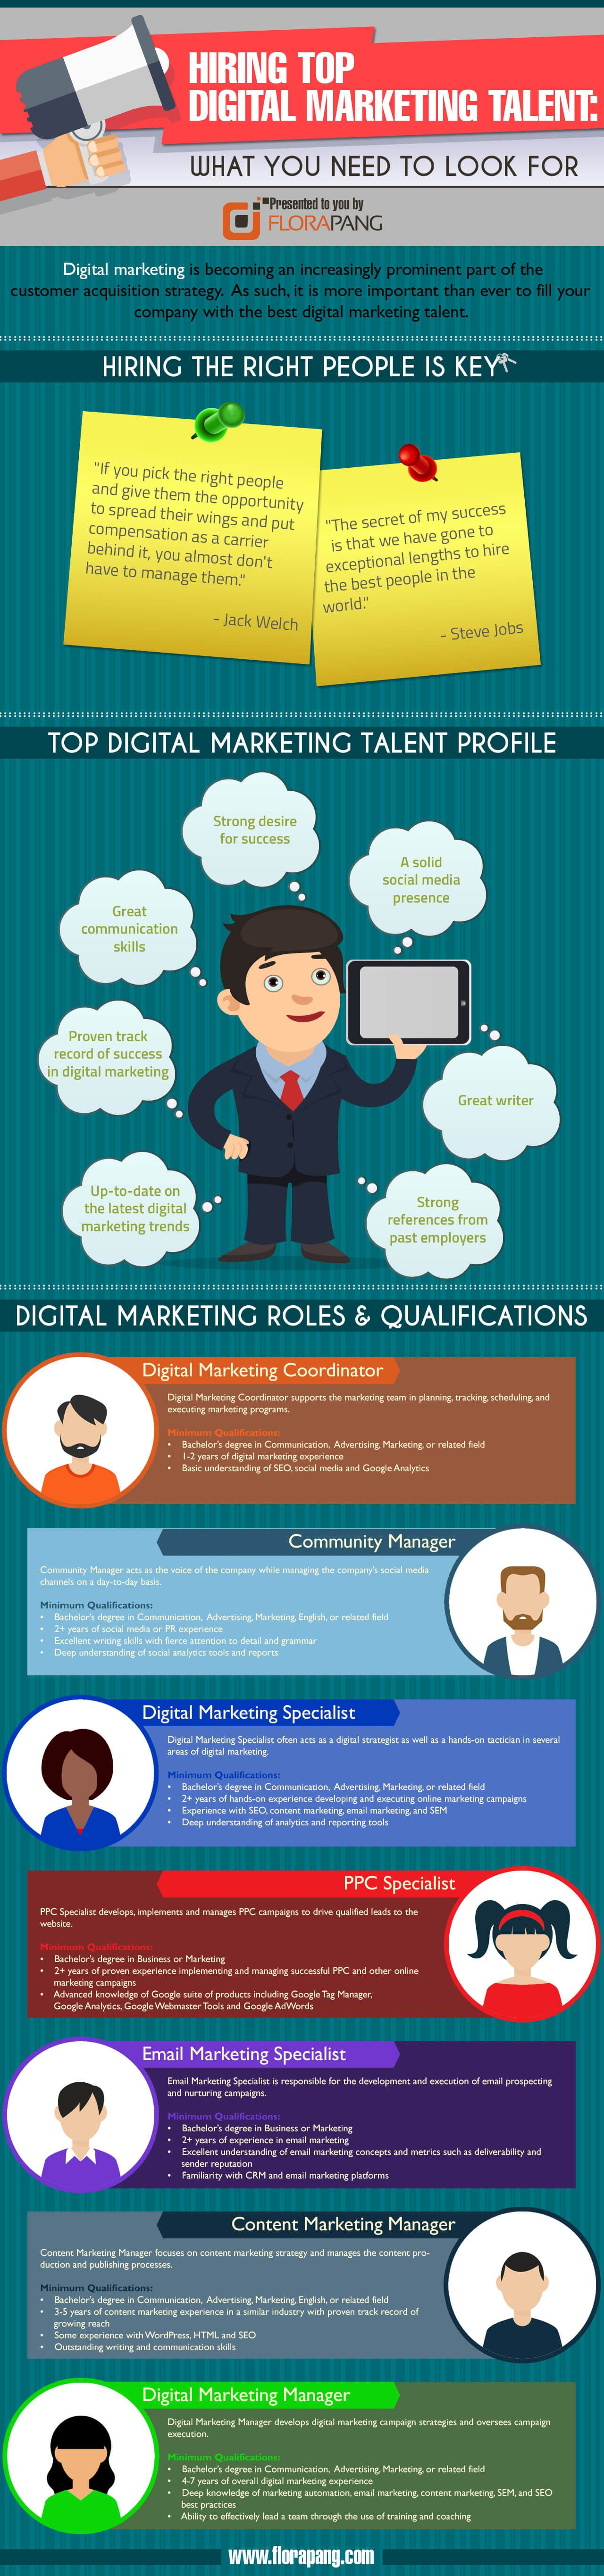 Hiring Top Digital Marketing Talent: What You Need to Look For #infographic